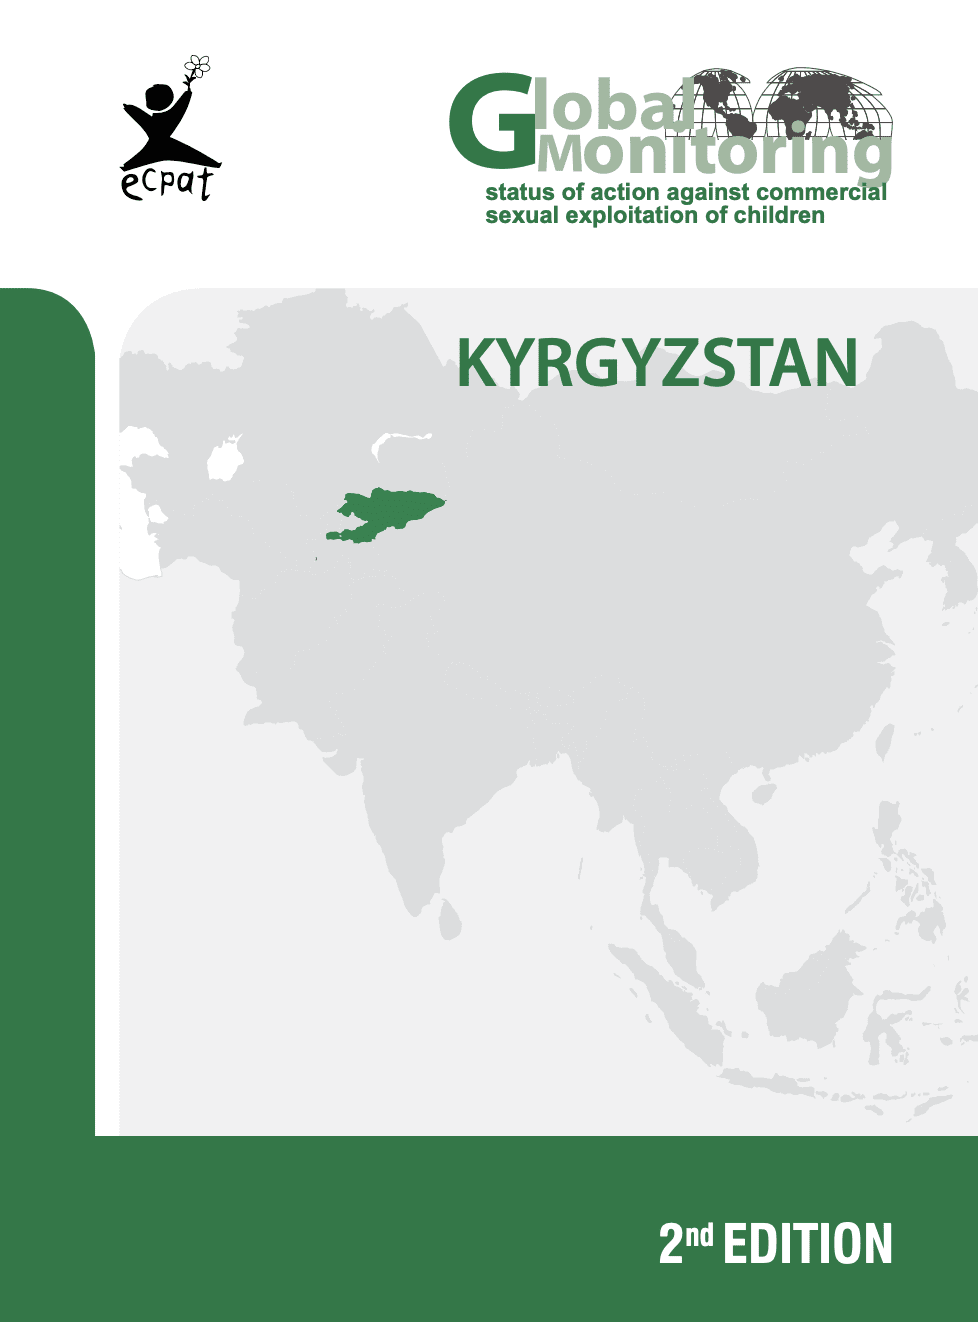 Global Monitoring Status of Action Against Commercial Sexual Exploitation of Children: Kyrgyzstan